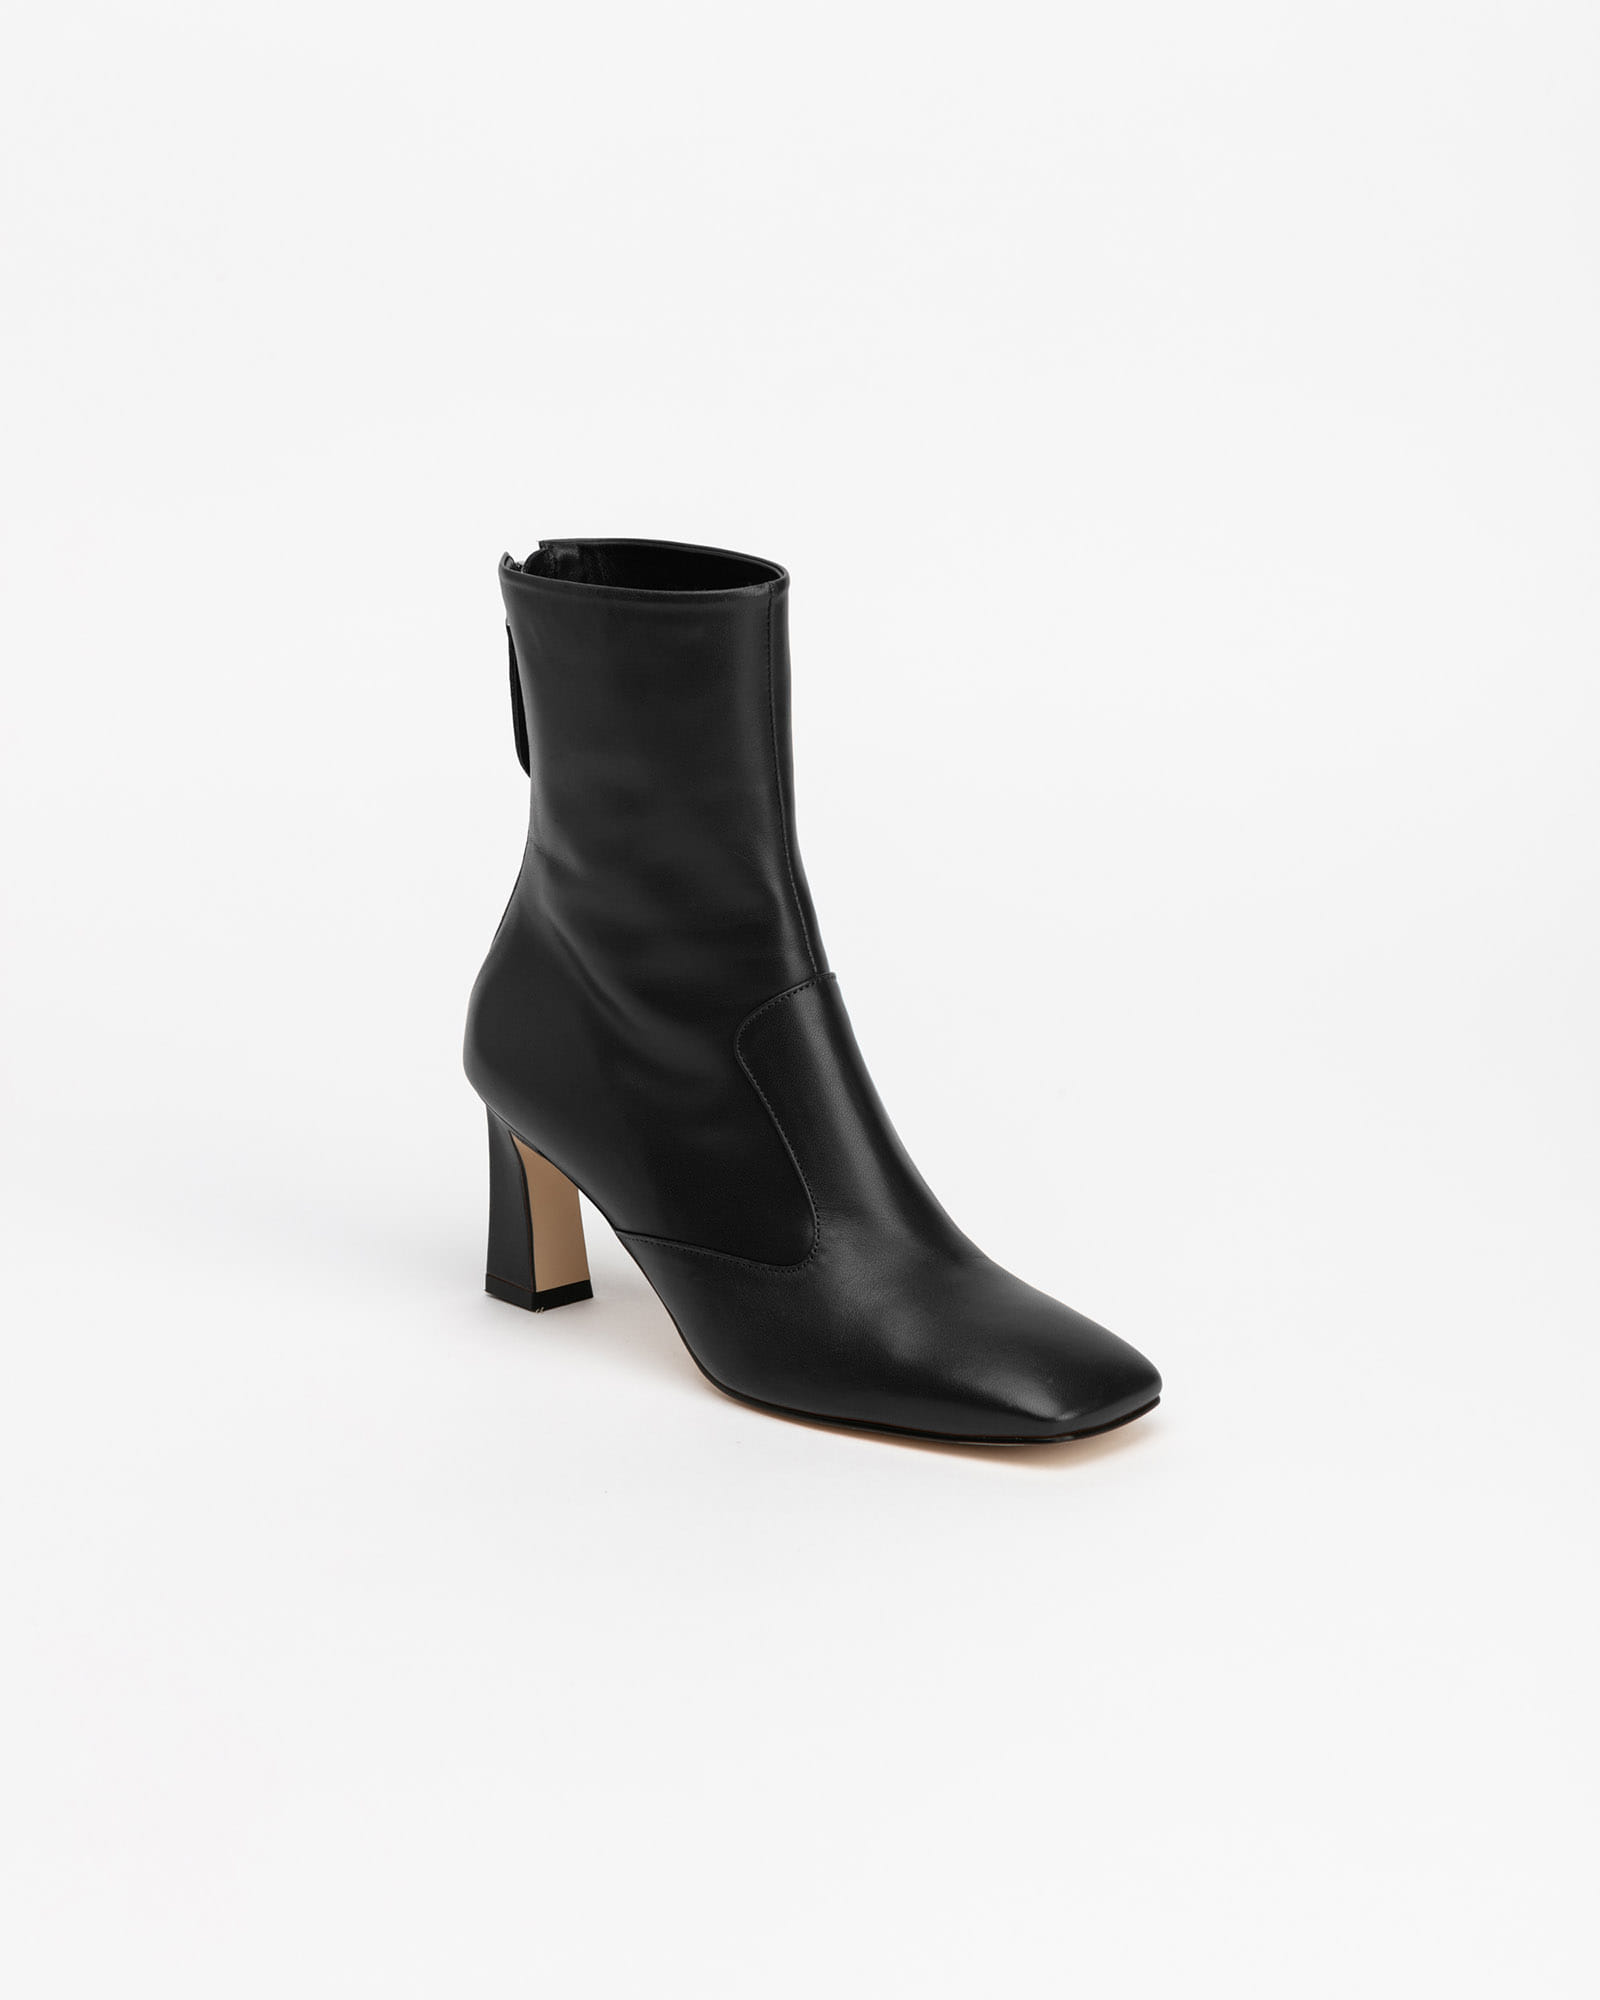 Elisa Boots in Regular Black